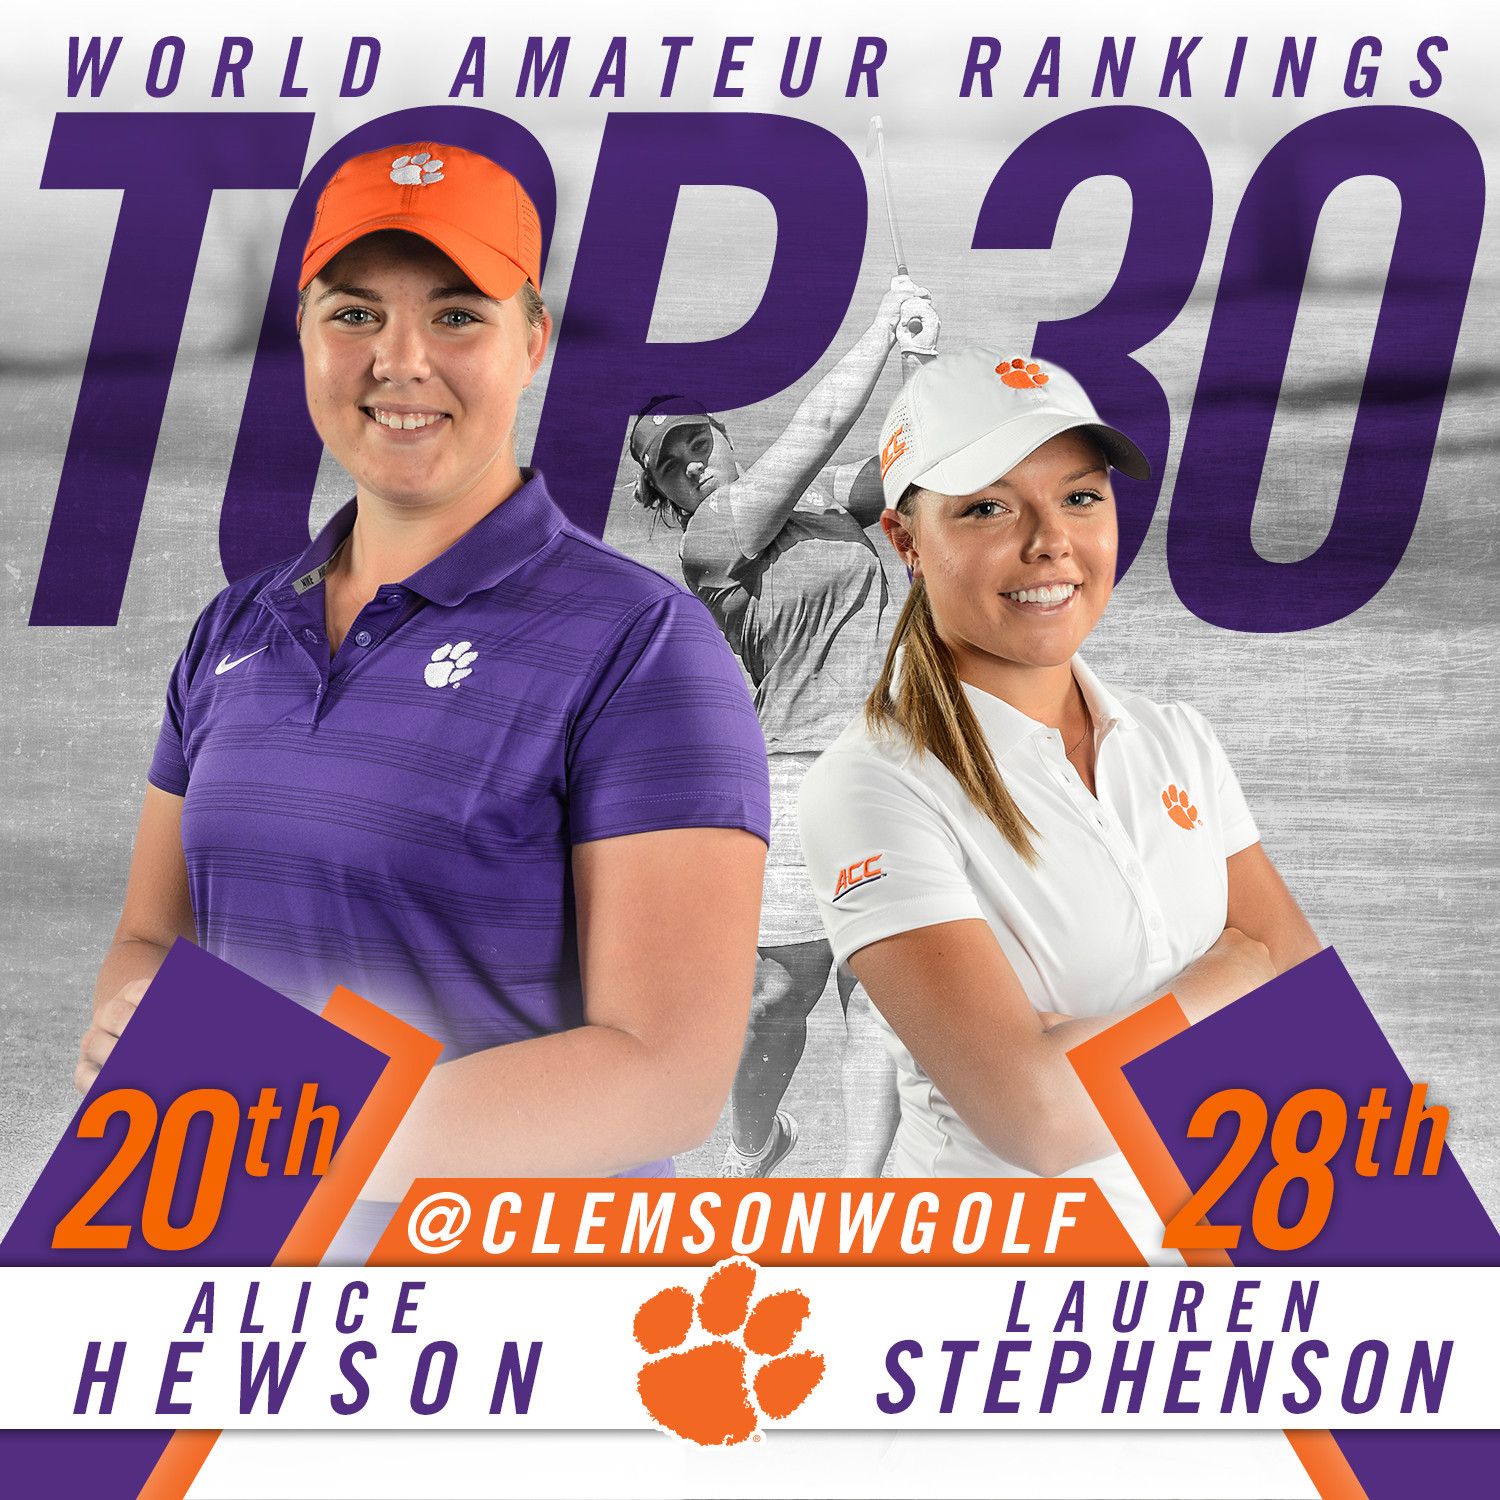 Hewson and Stephenson in Top 30 of World Amateur Rankings